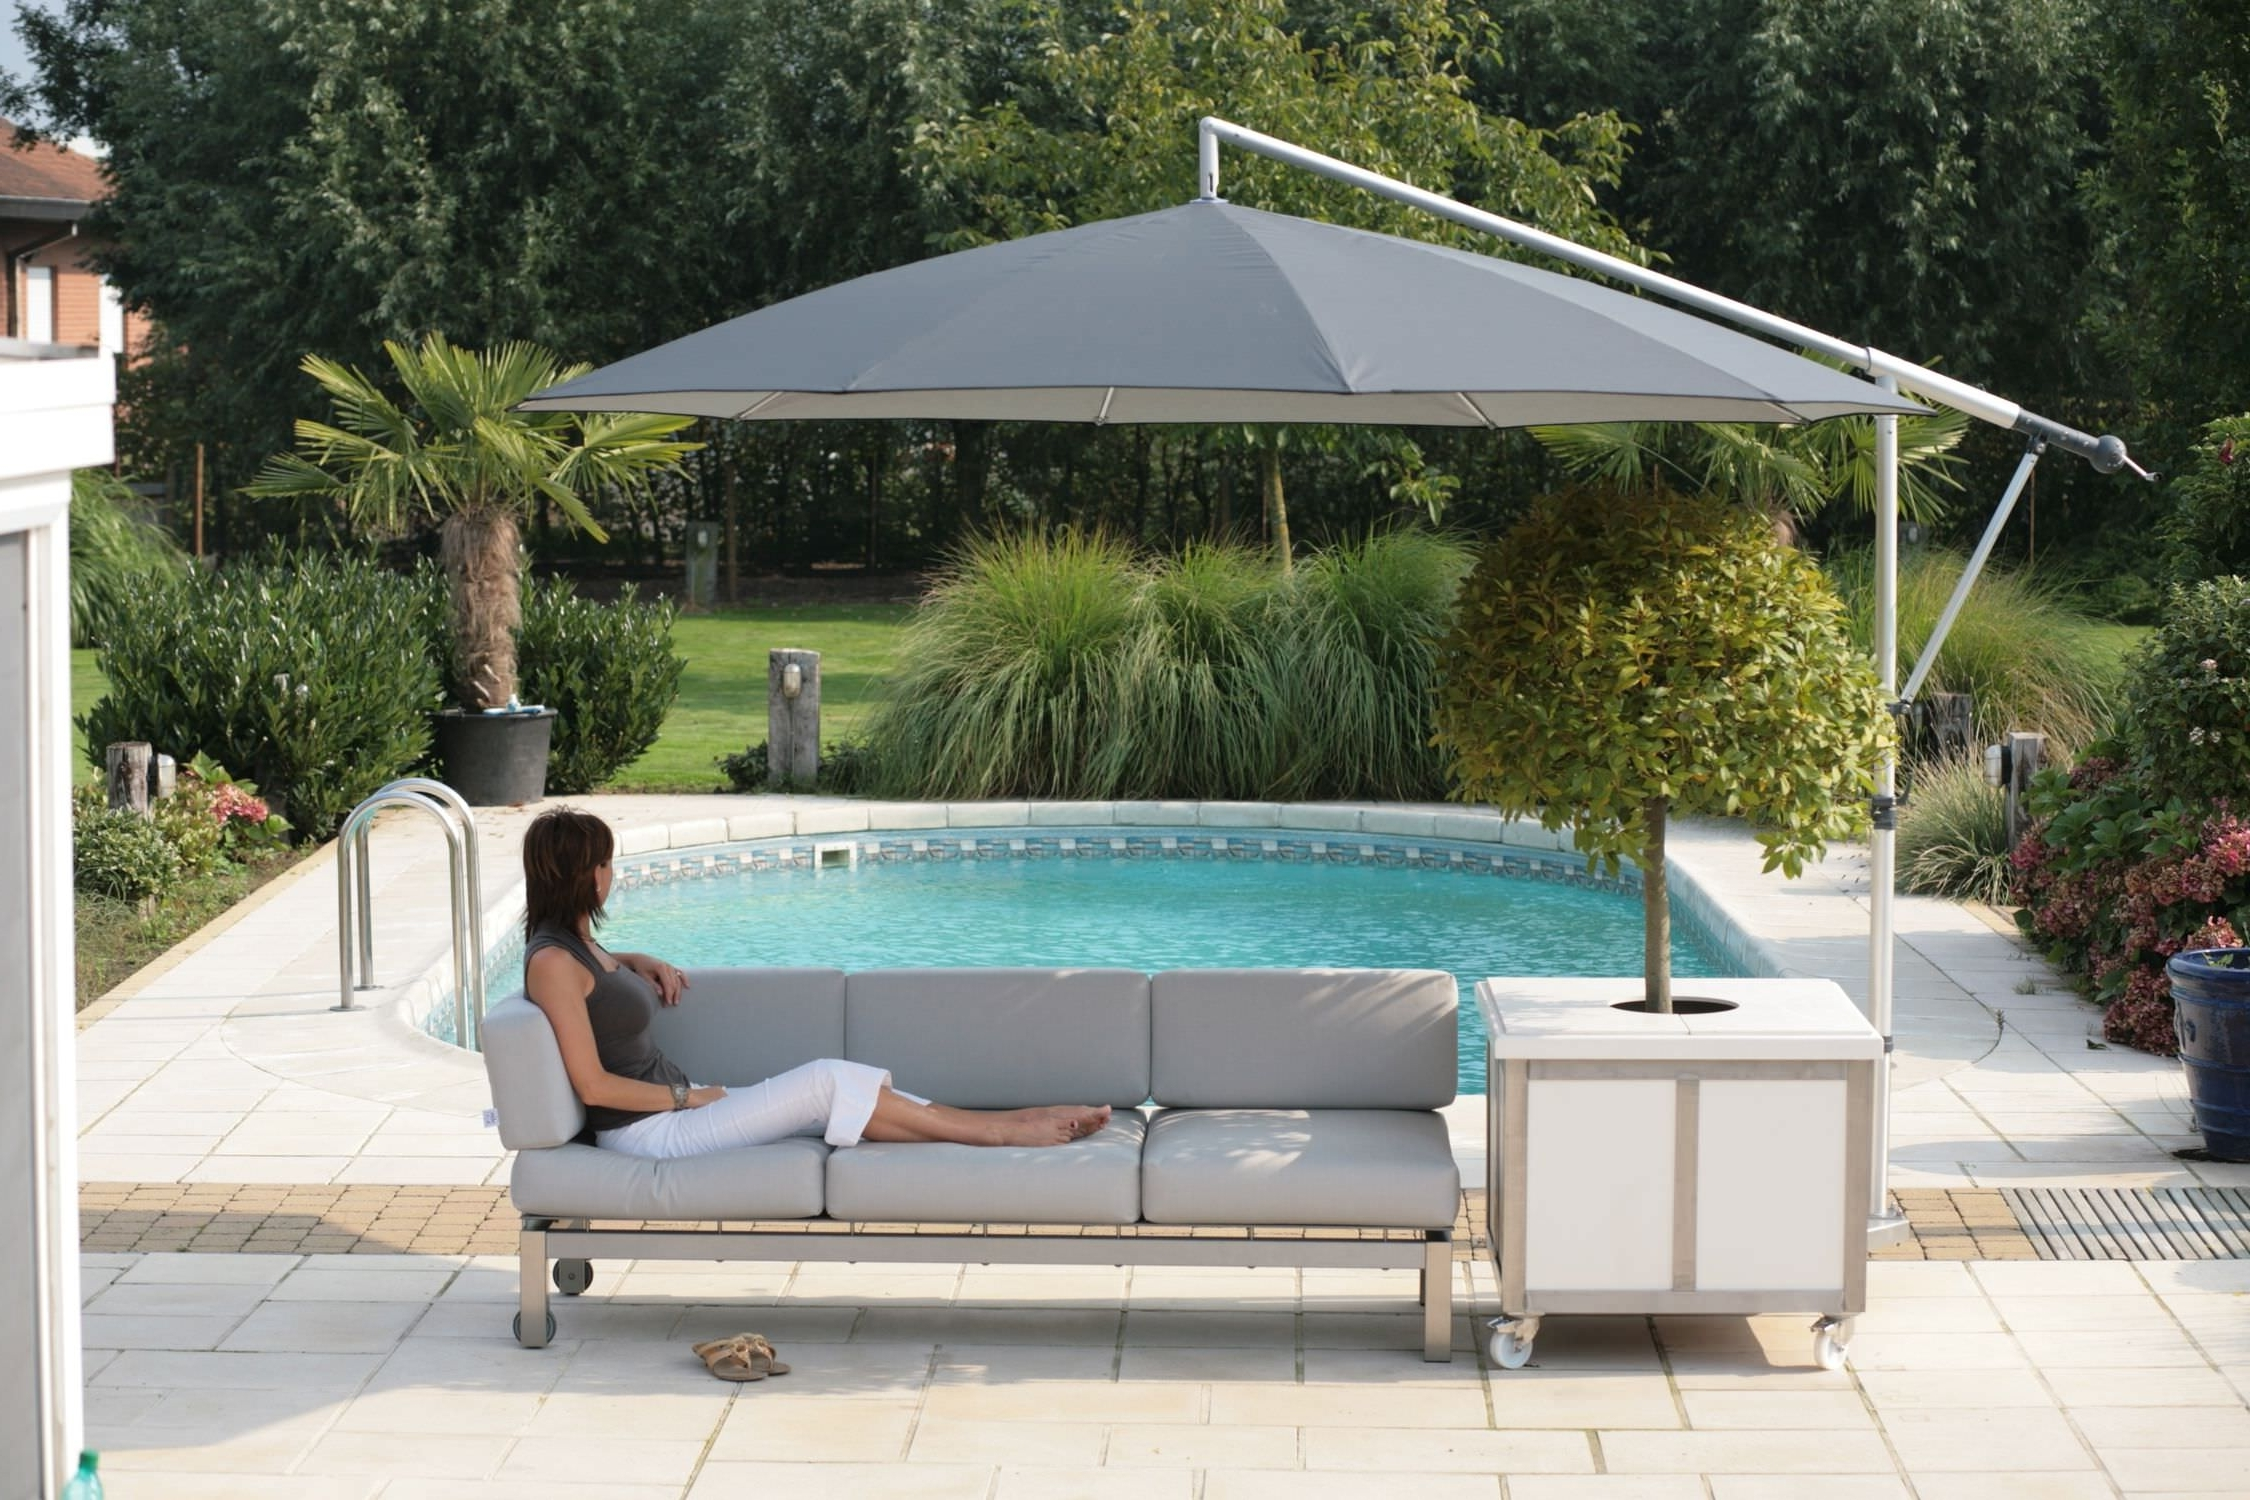 Well Known Home Decor: Tempting Grey Cantilever Patio Umbrella Reviews For Cozy Throughout Grey Patio Umbrellas (View 20 of 20)